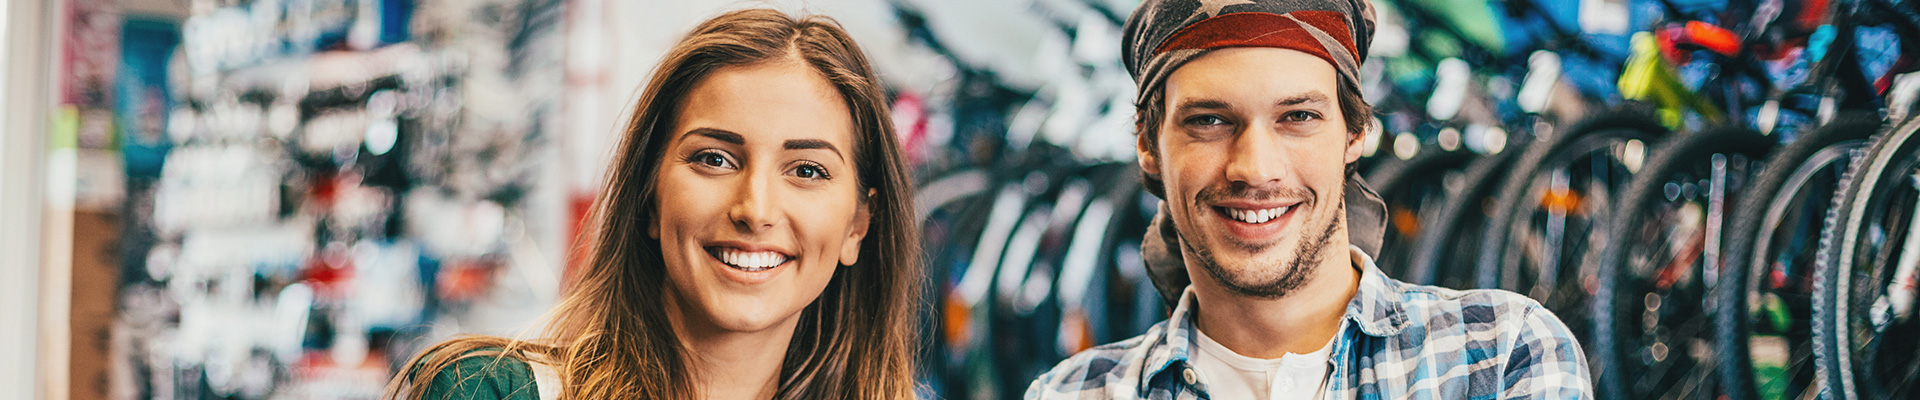 Young woman and young man in a bicycle repair shop, smiling in the camera.